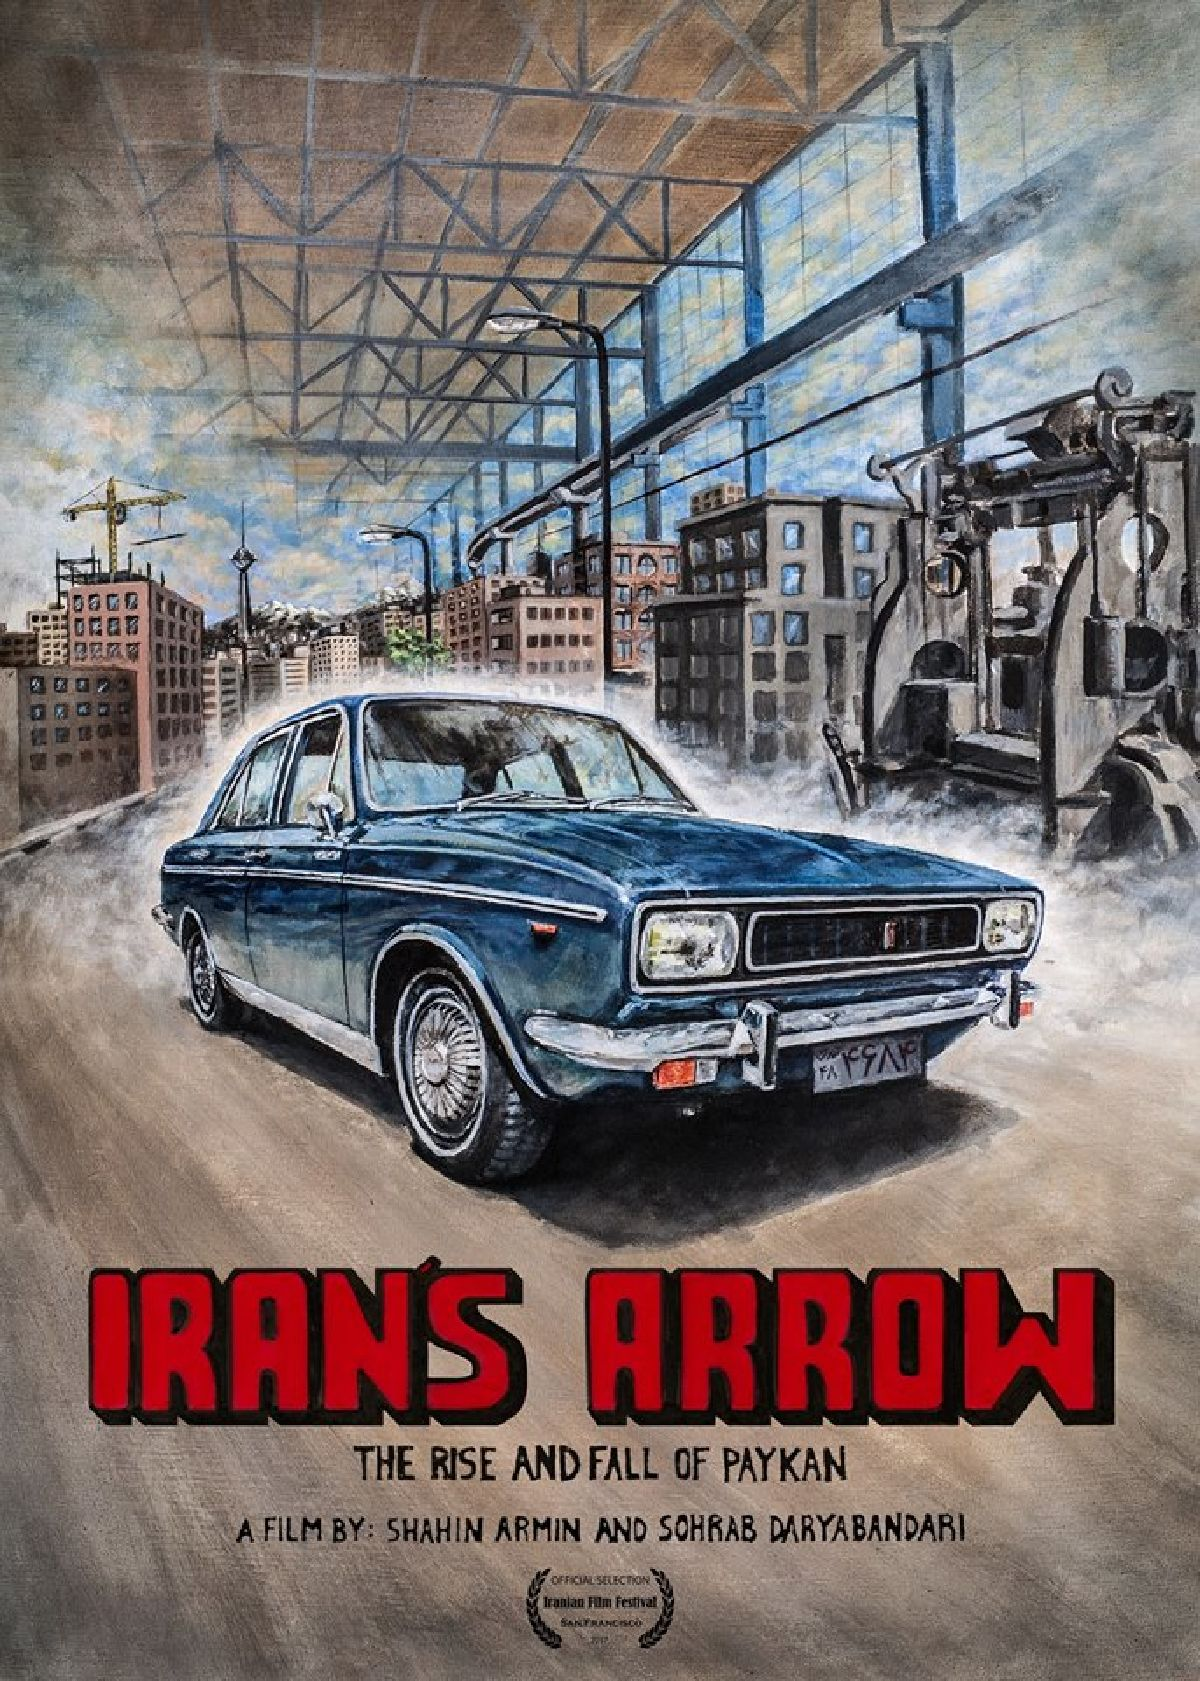 'Iran's Arrow: The Rise And Fall Of Paykan' movie poster